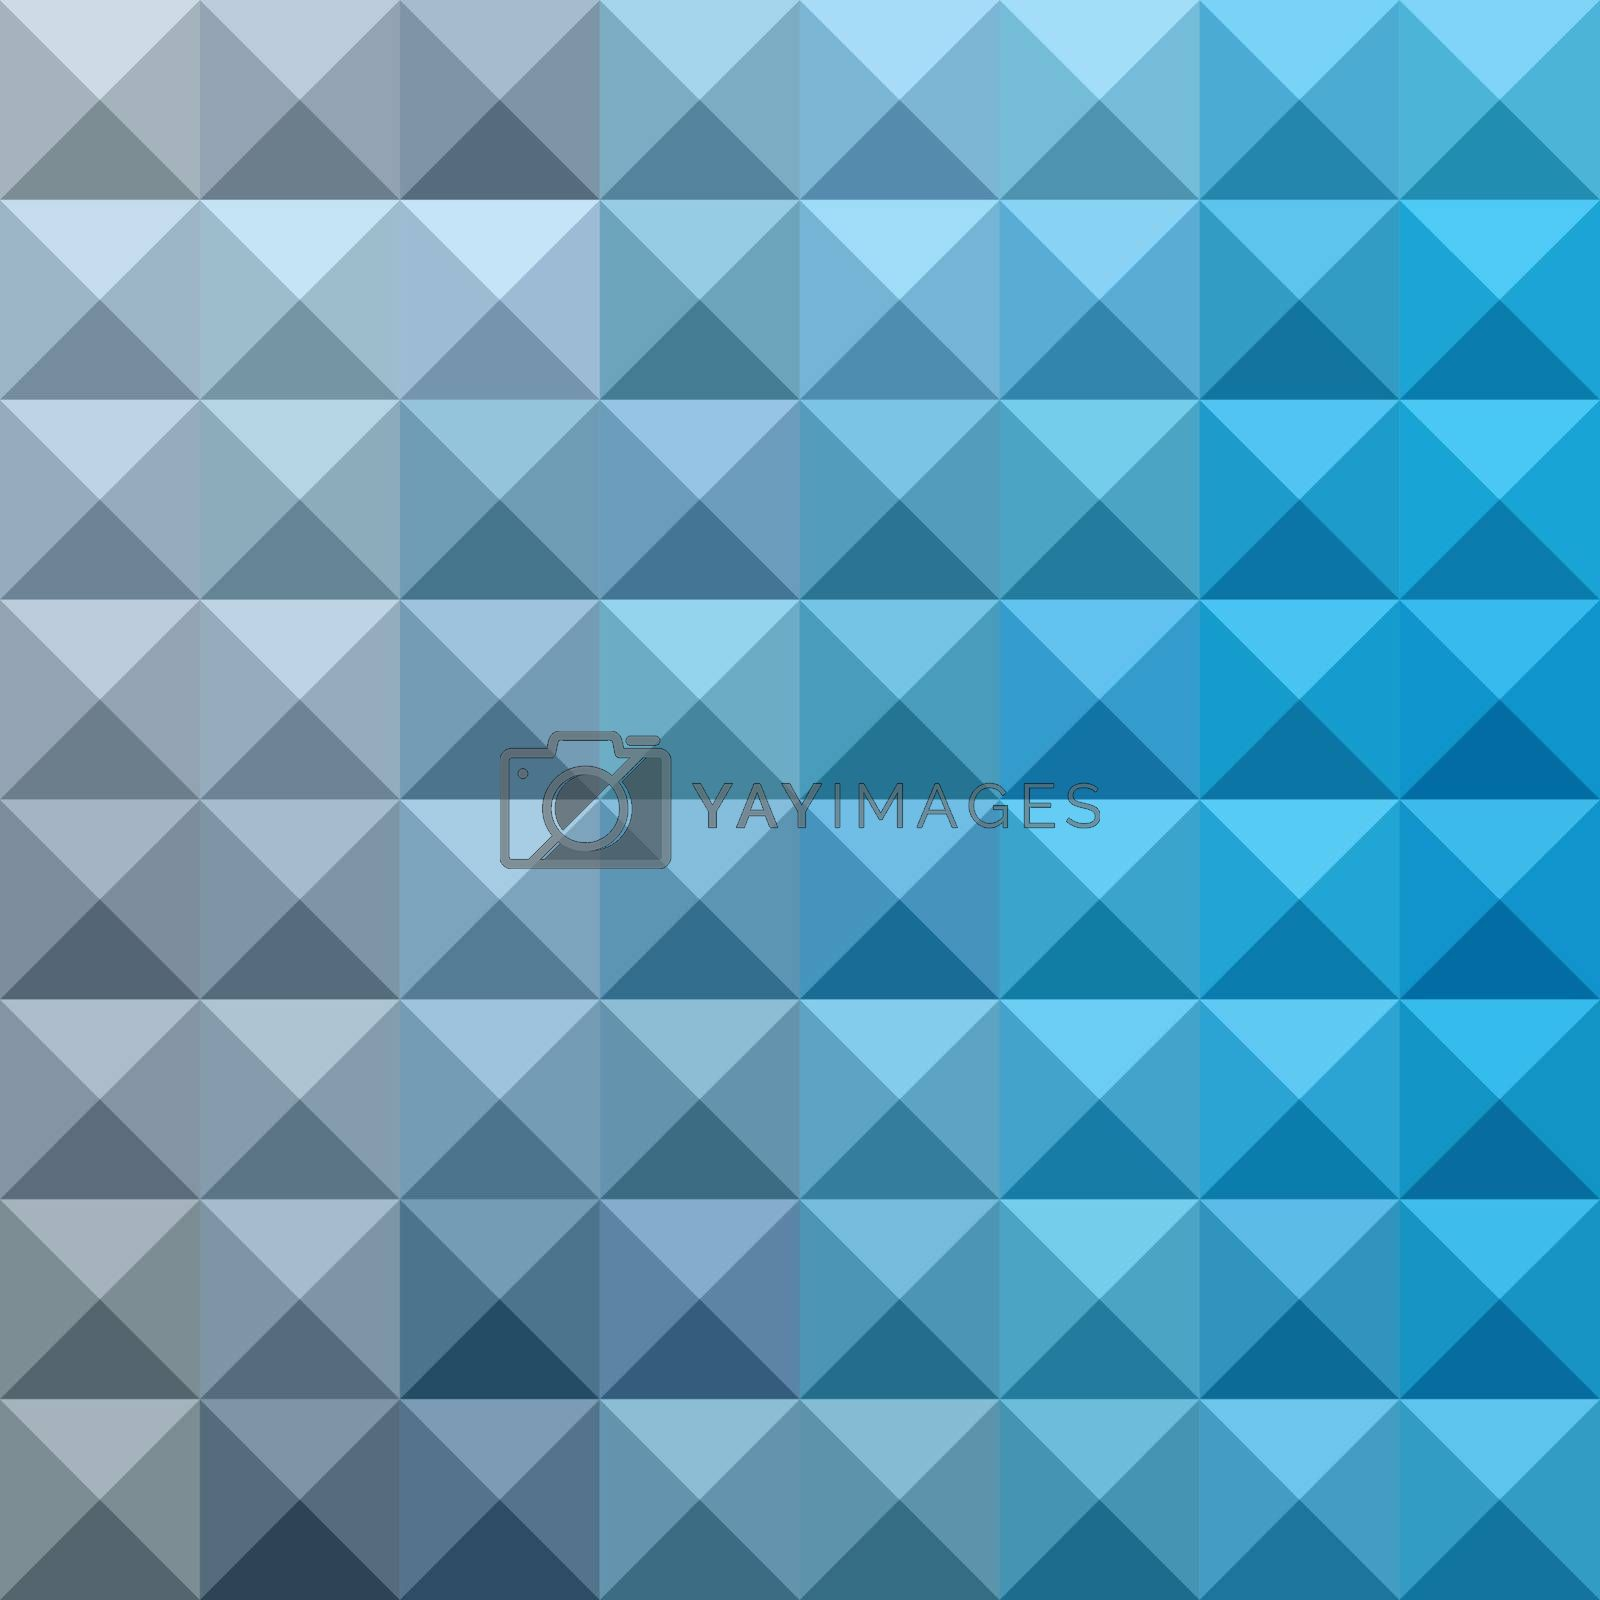 Low polygon style illustration of a bright cerulean blue abstract geometric background.